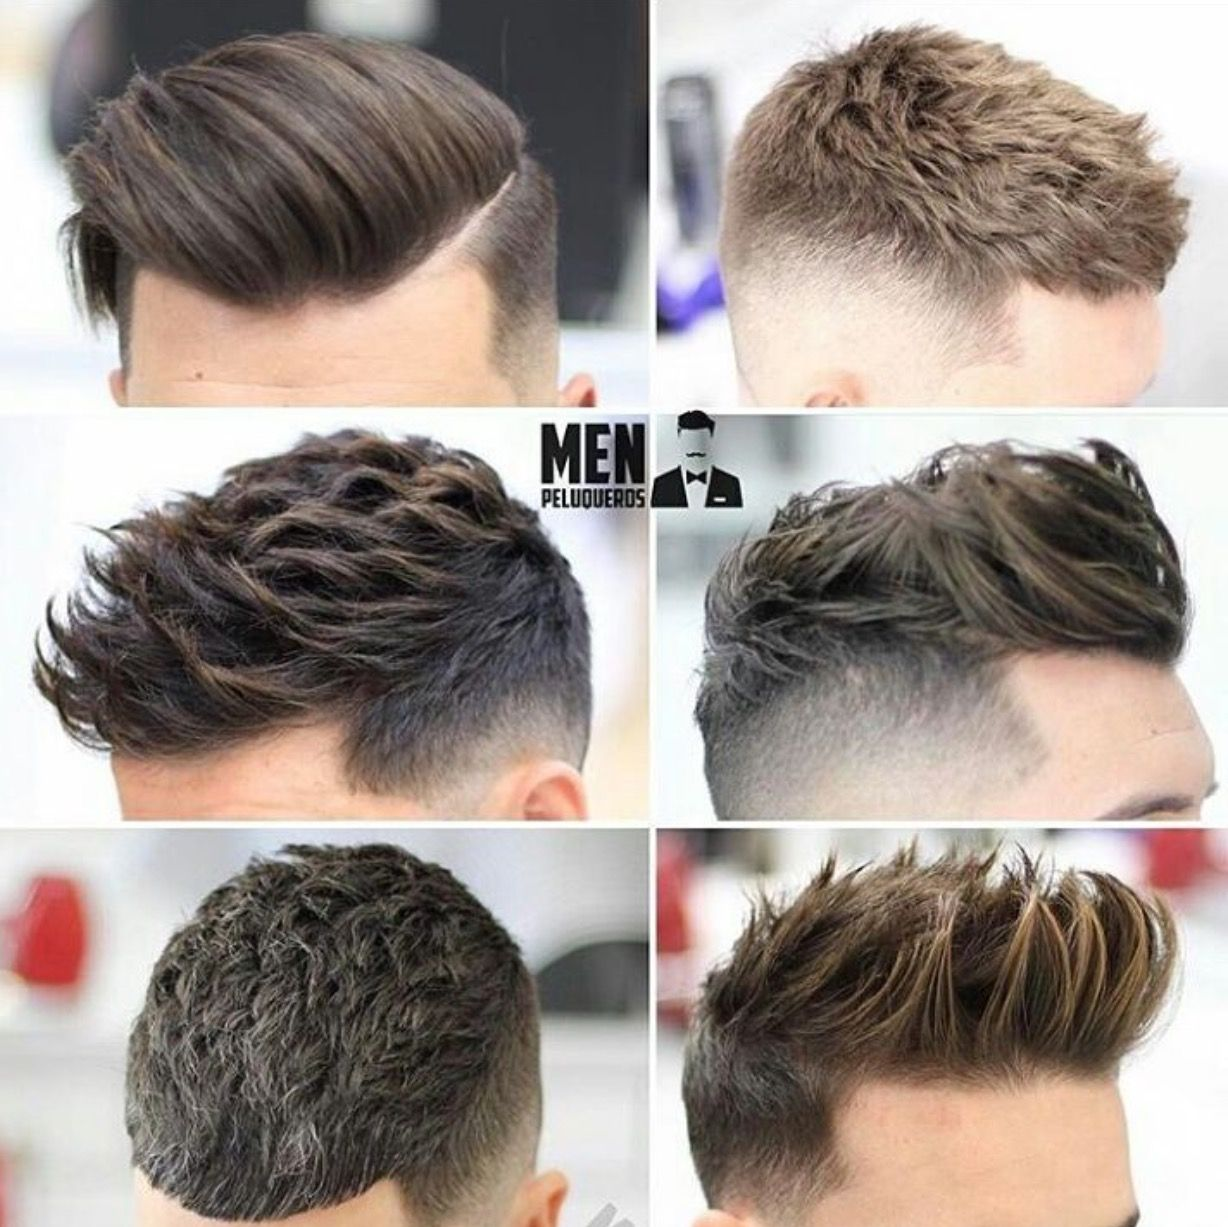 Hair cutting style boy image pin by david leyva on barbas  pinterest  haircuts hair style and